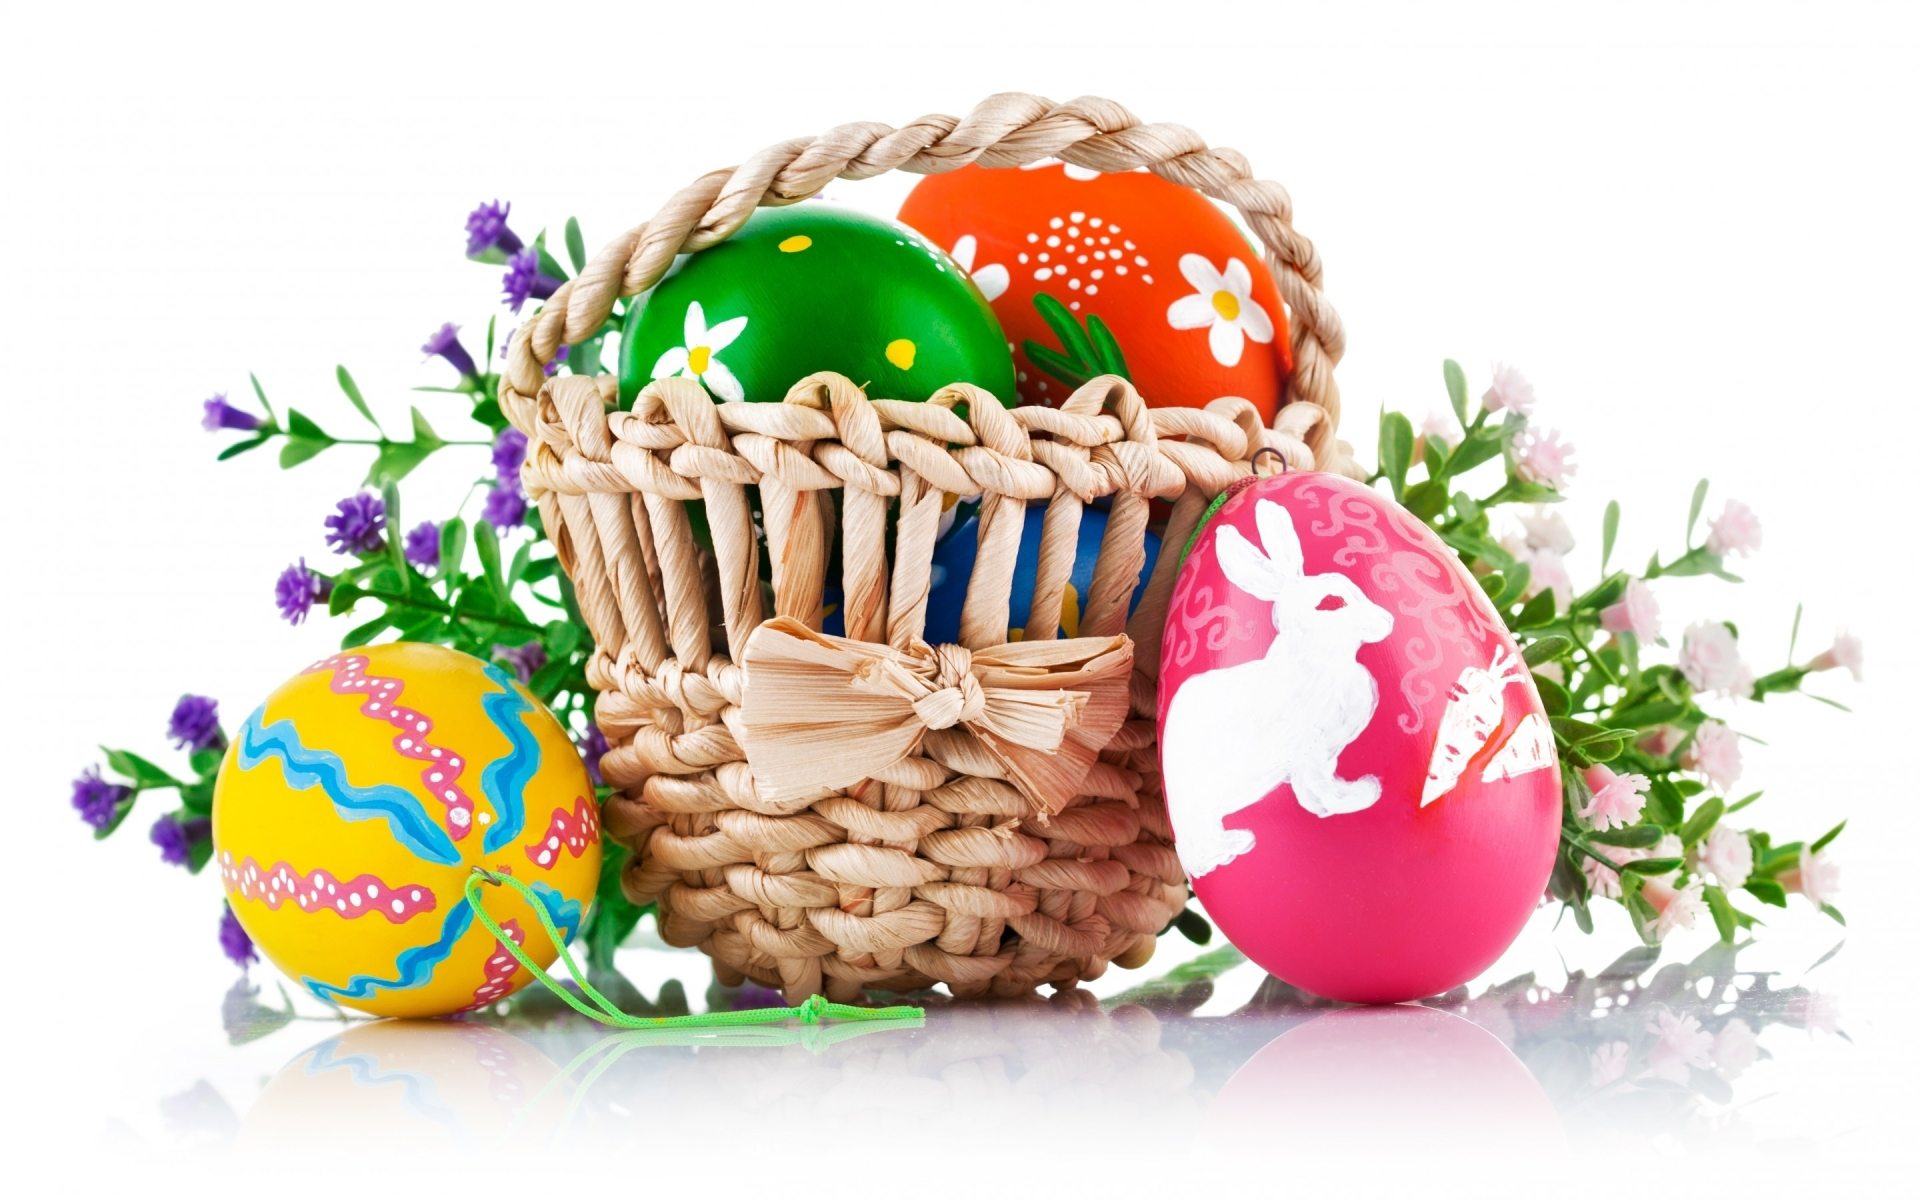 Easter Wallpapers Archives - Page 8 of 10 - HD Desktop